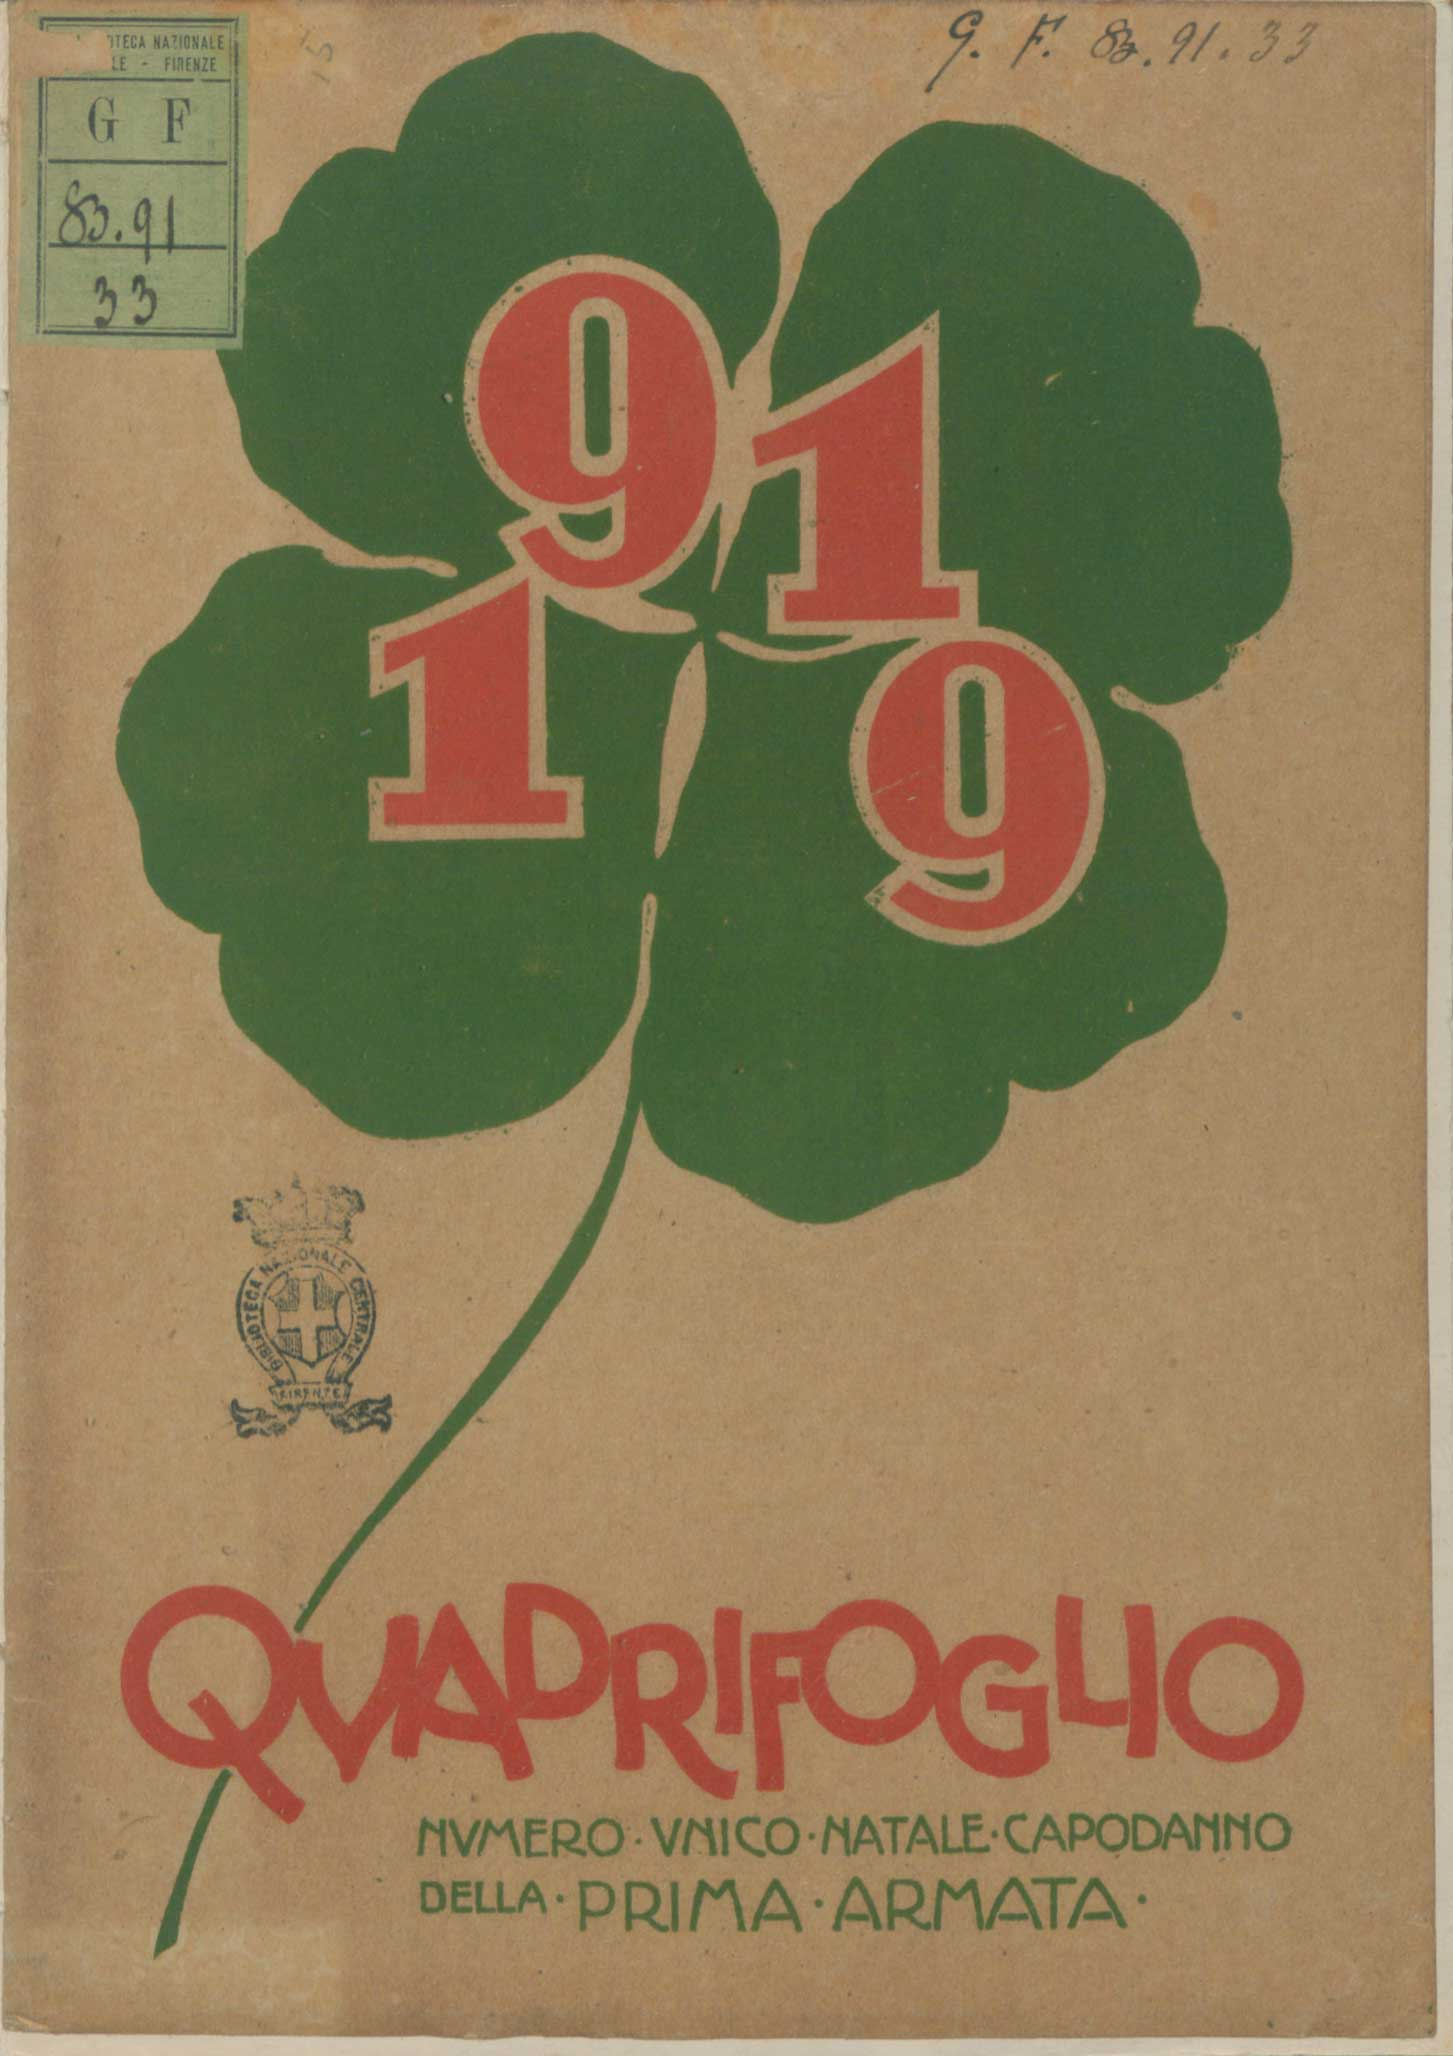 Soldiers' shamrocks